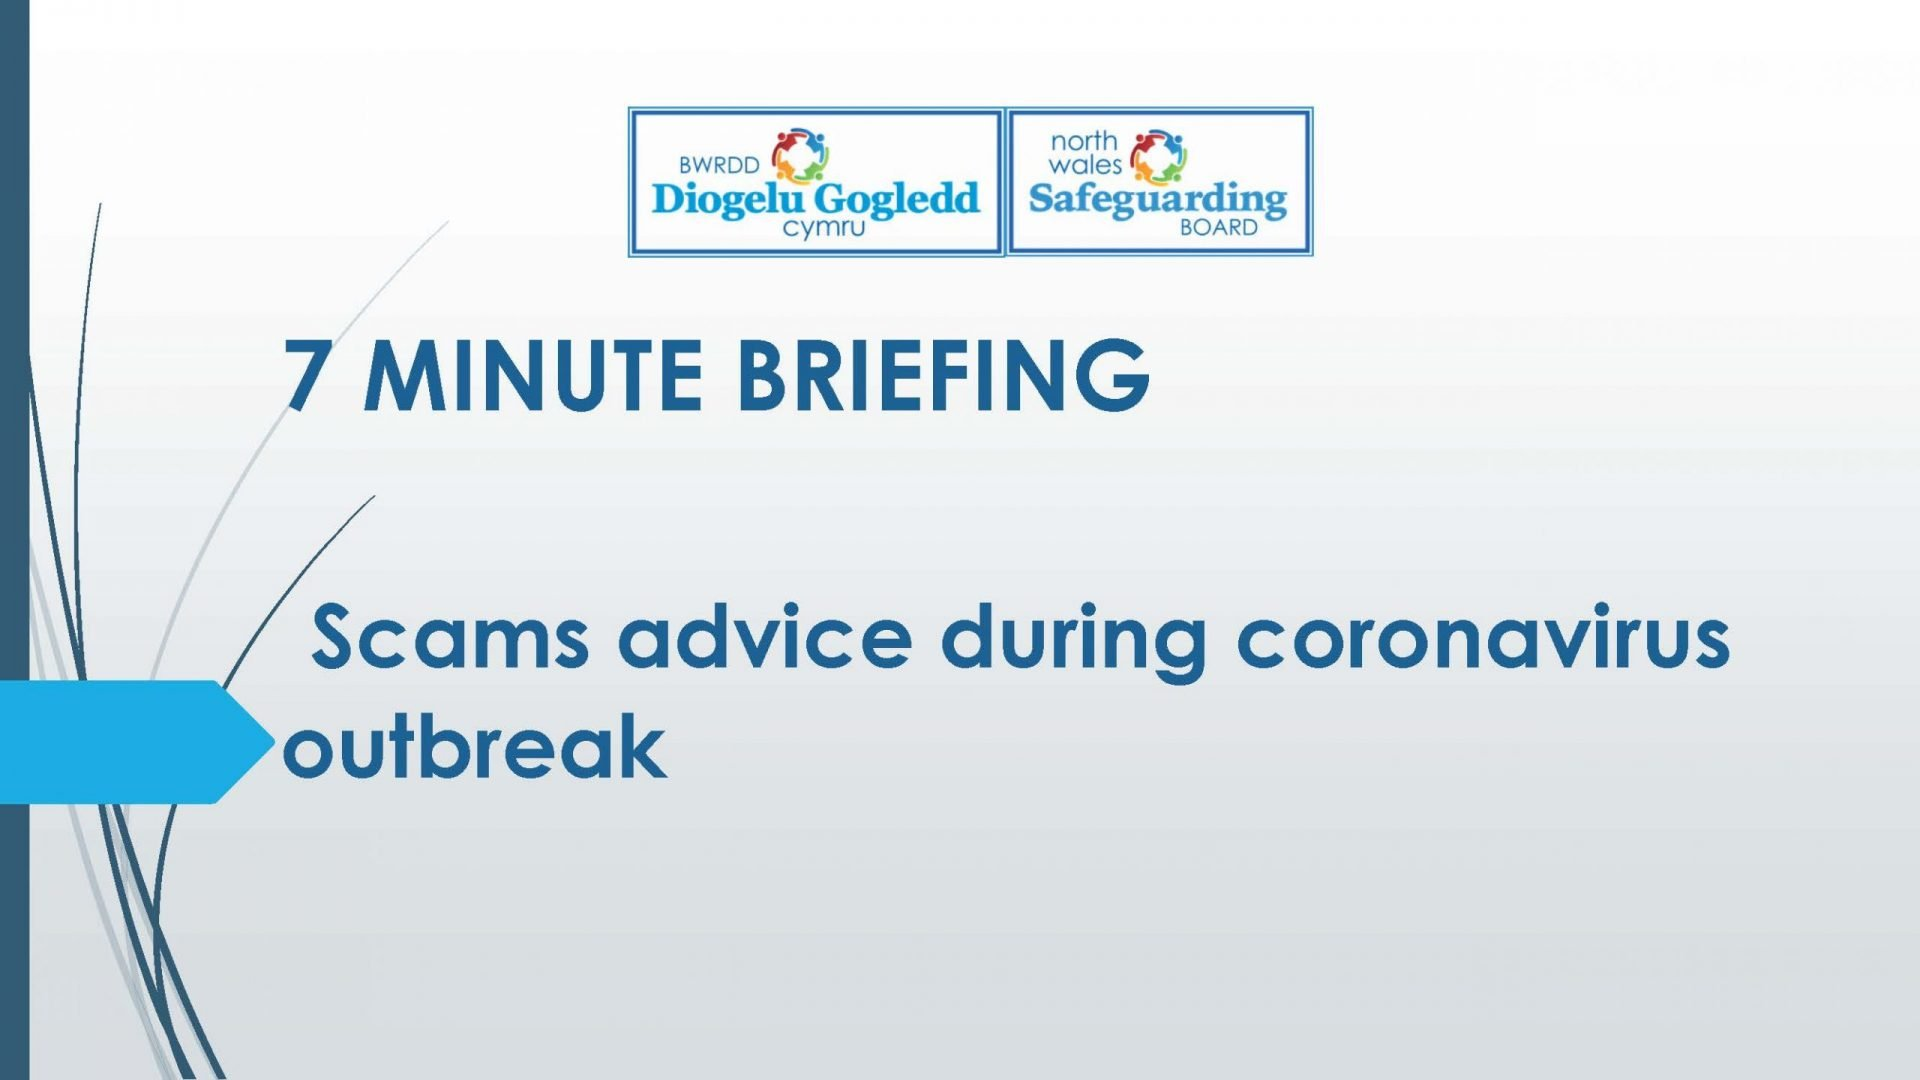 7 minute briefing scams during Coronavirus outbreak